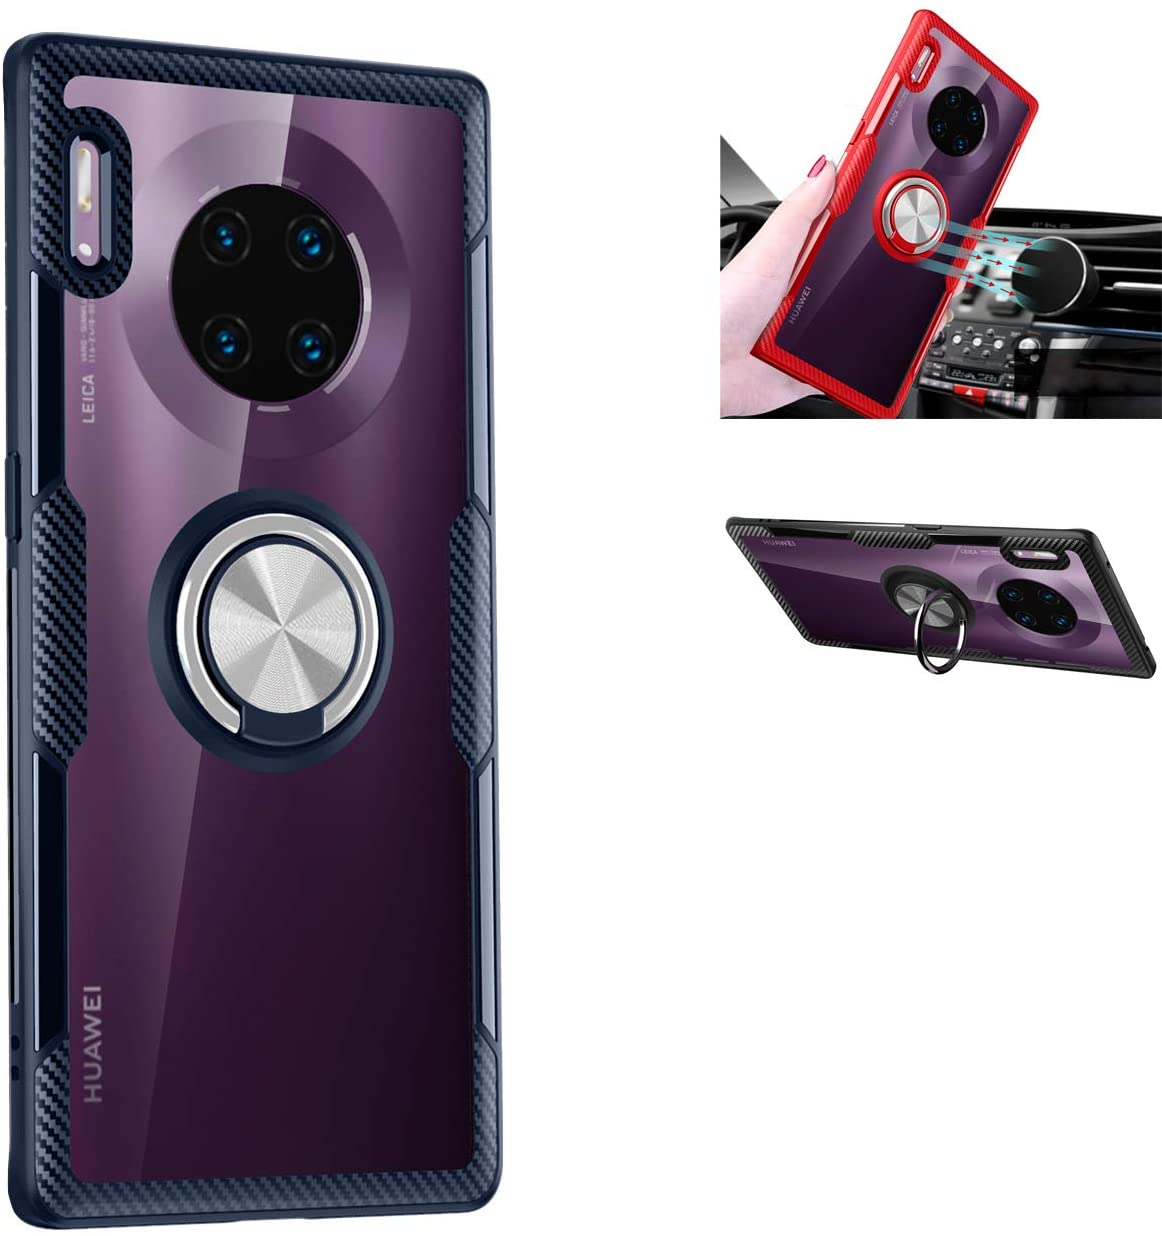 GarHold Huawei Mate 30 Pro case,Silicone Shockproof TPU+PC,Transparent Tempering Protection Cover,360° Rotating Metal Ring Kickstand,car Holder case,for Huawei Mate 30 Pro (Navy/Silver)